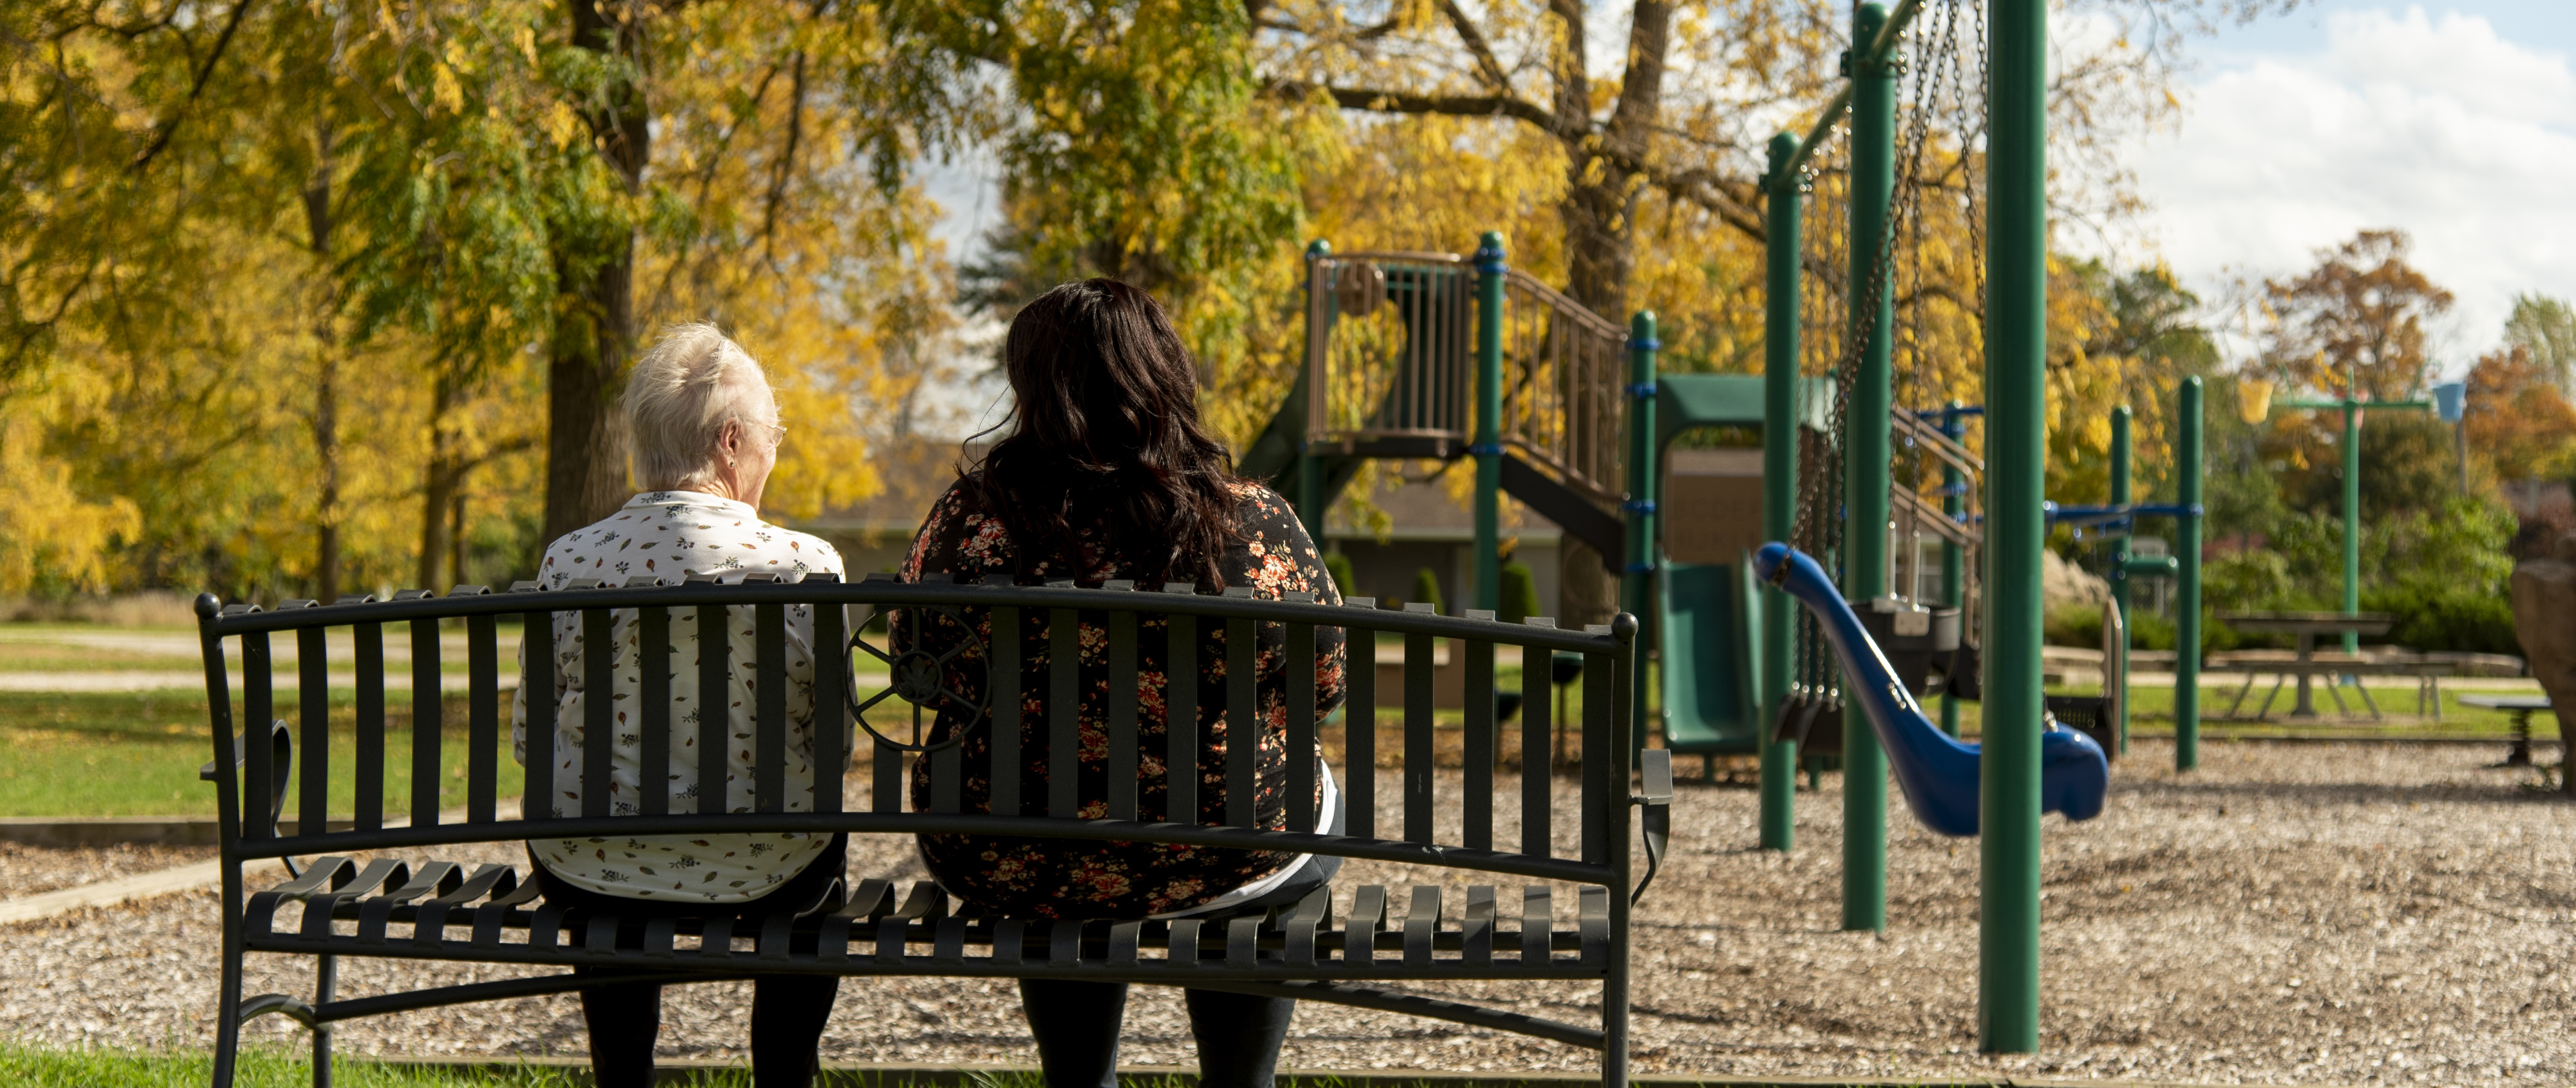 senior and woman at a park